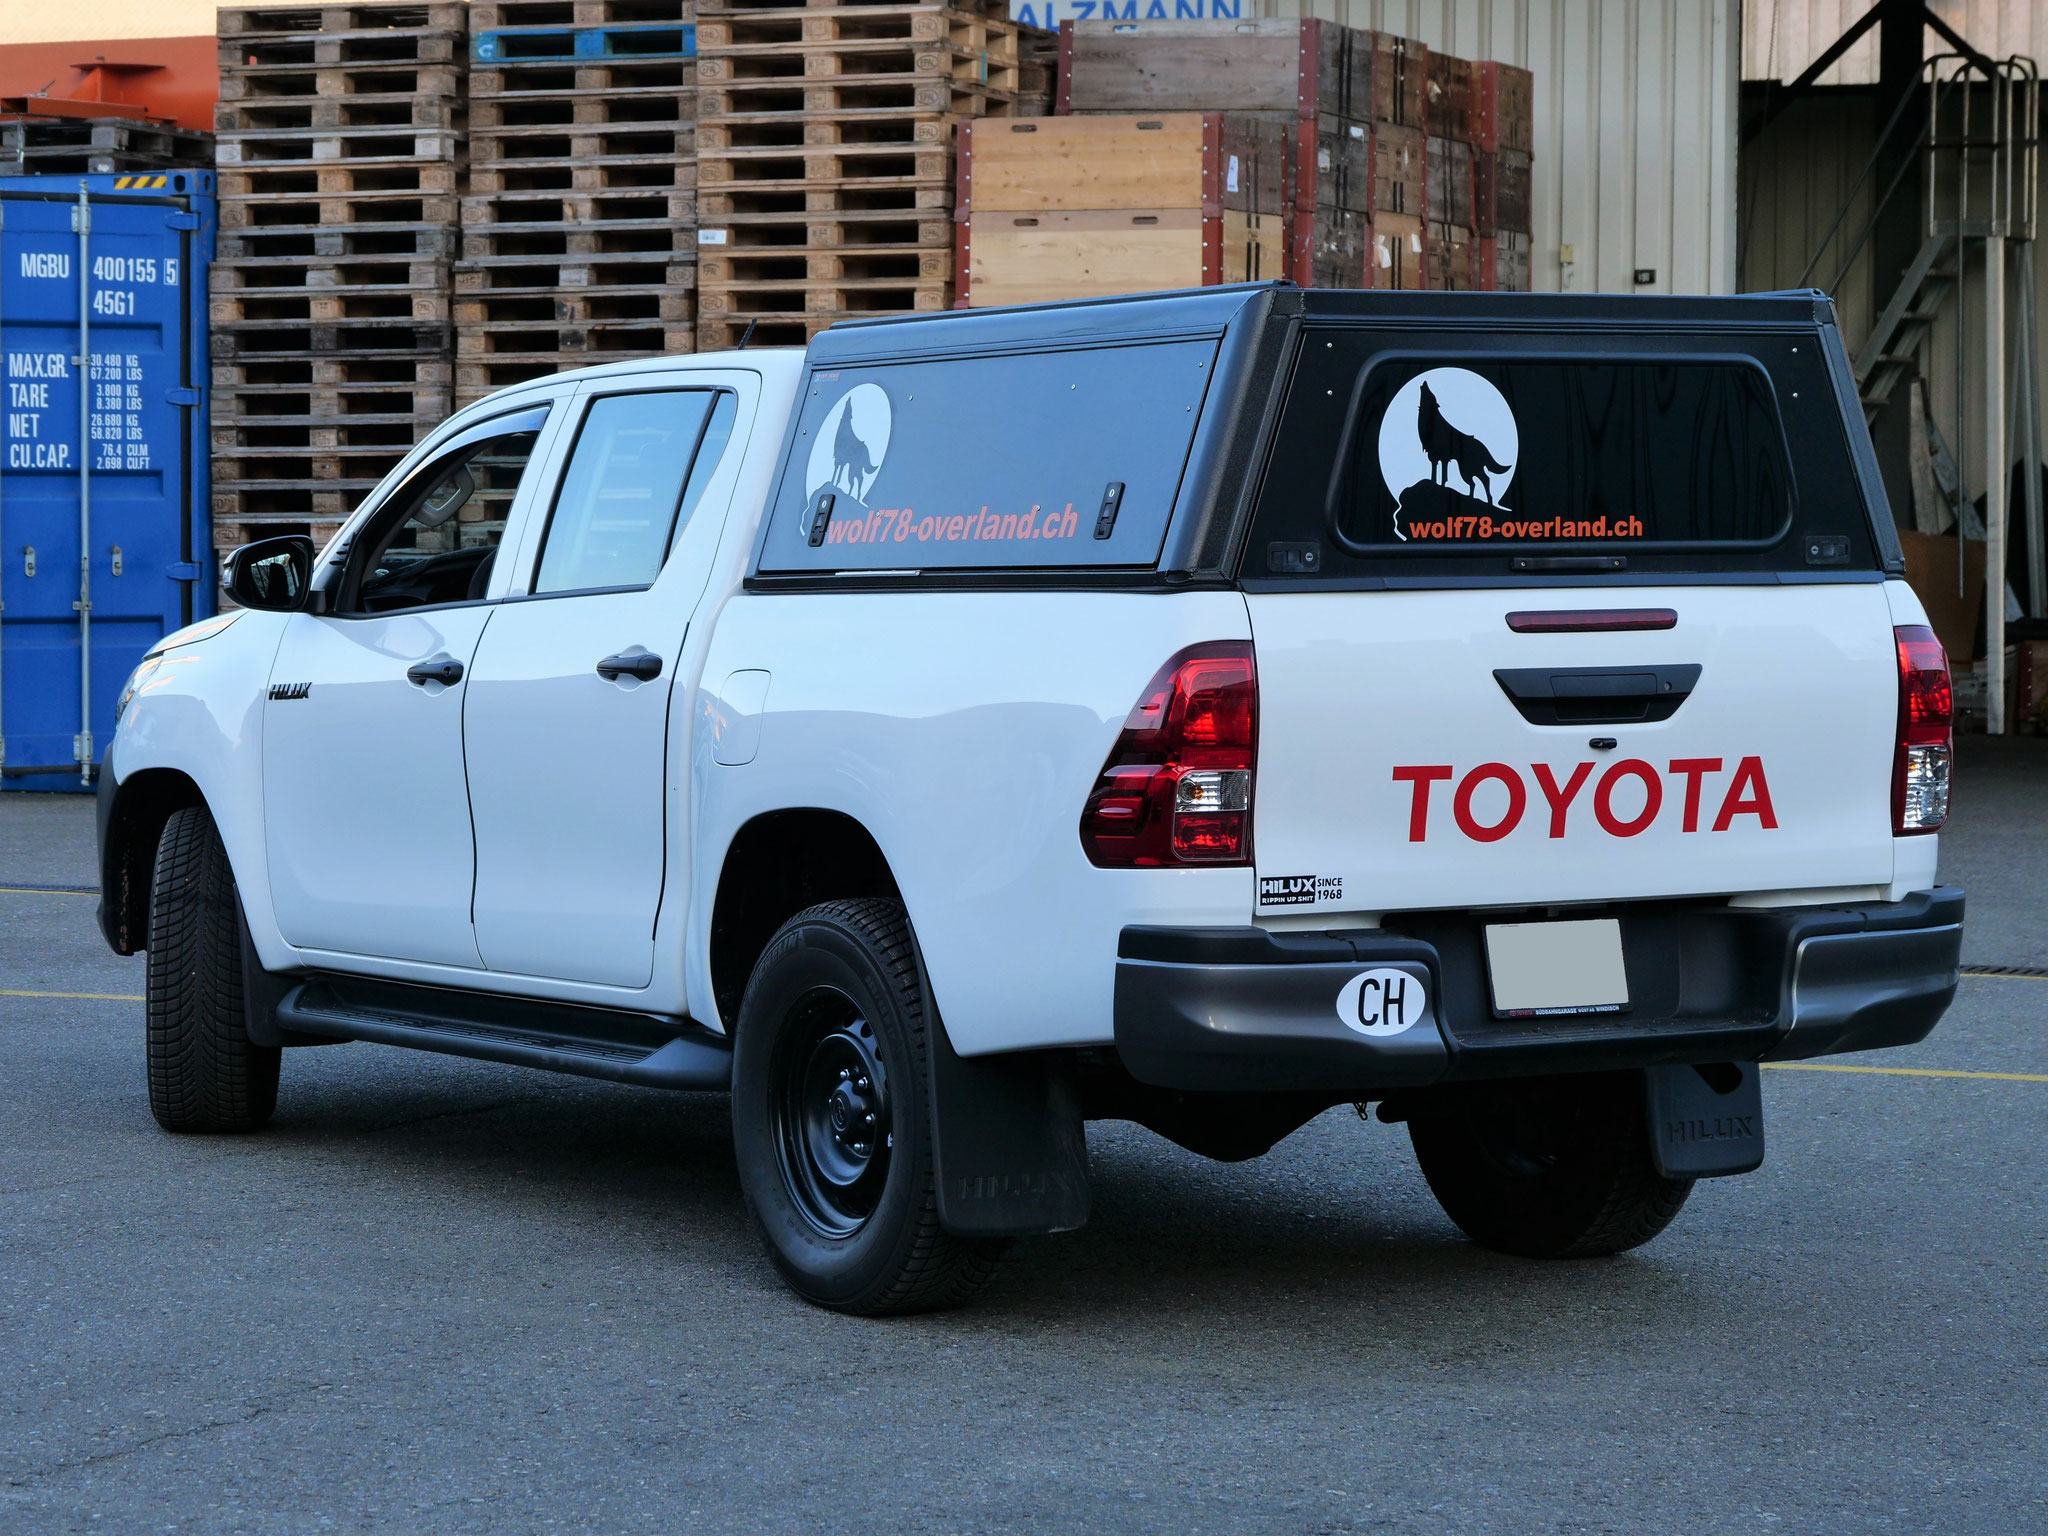 Toyota Hilux Revo 2017 2.4 Olaf Alu-cab offroad overland expedition 4x4 ARB Frontrunner Rival4x4 bfgoodrich 265/70R17 wolf78-overland.ch